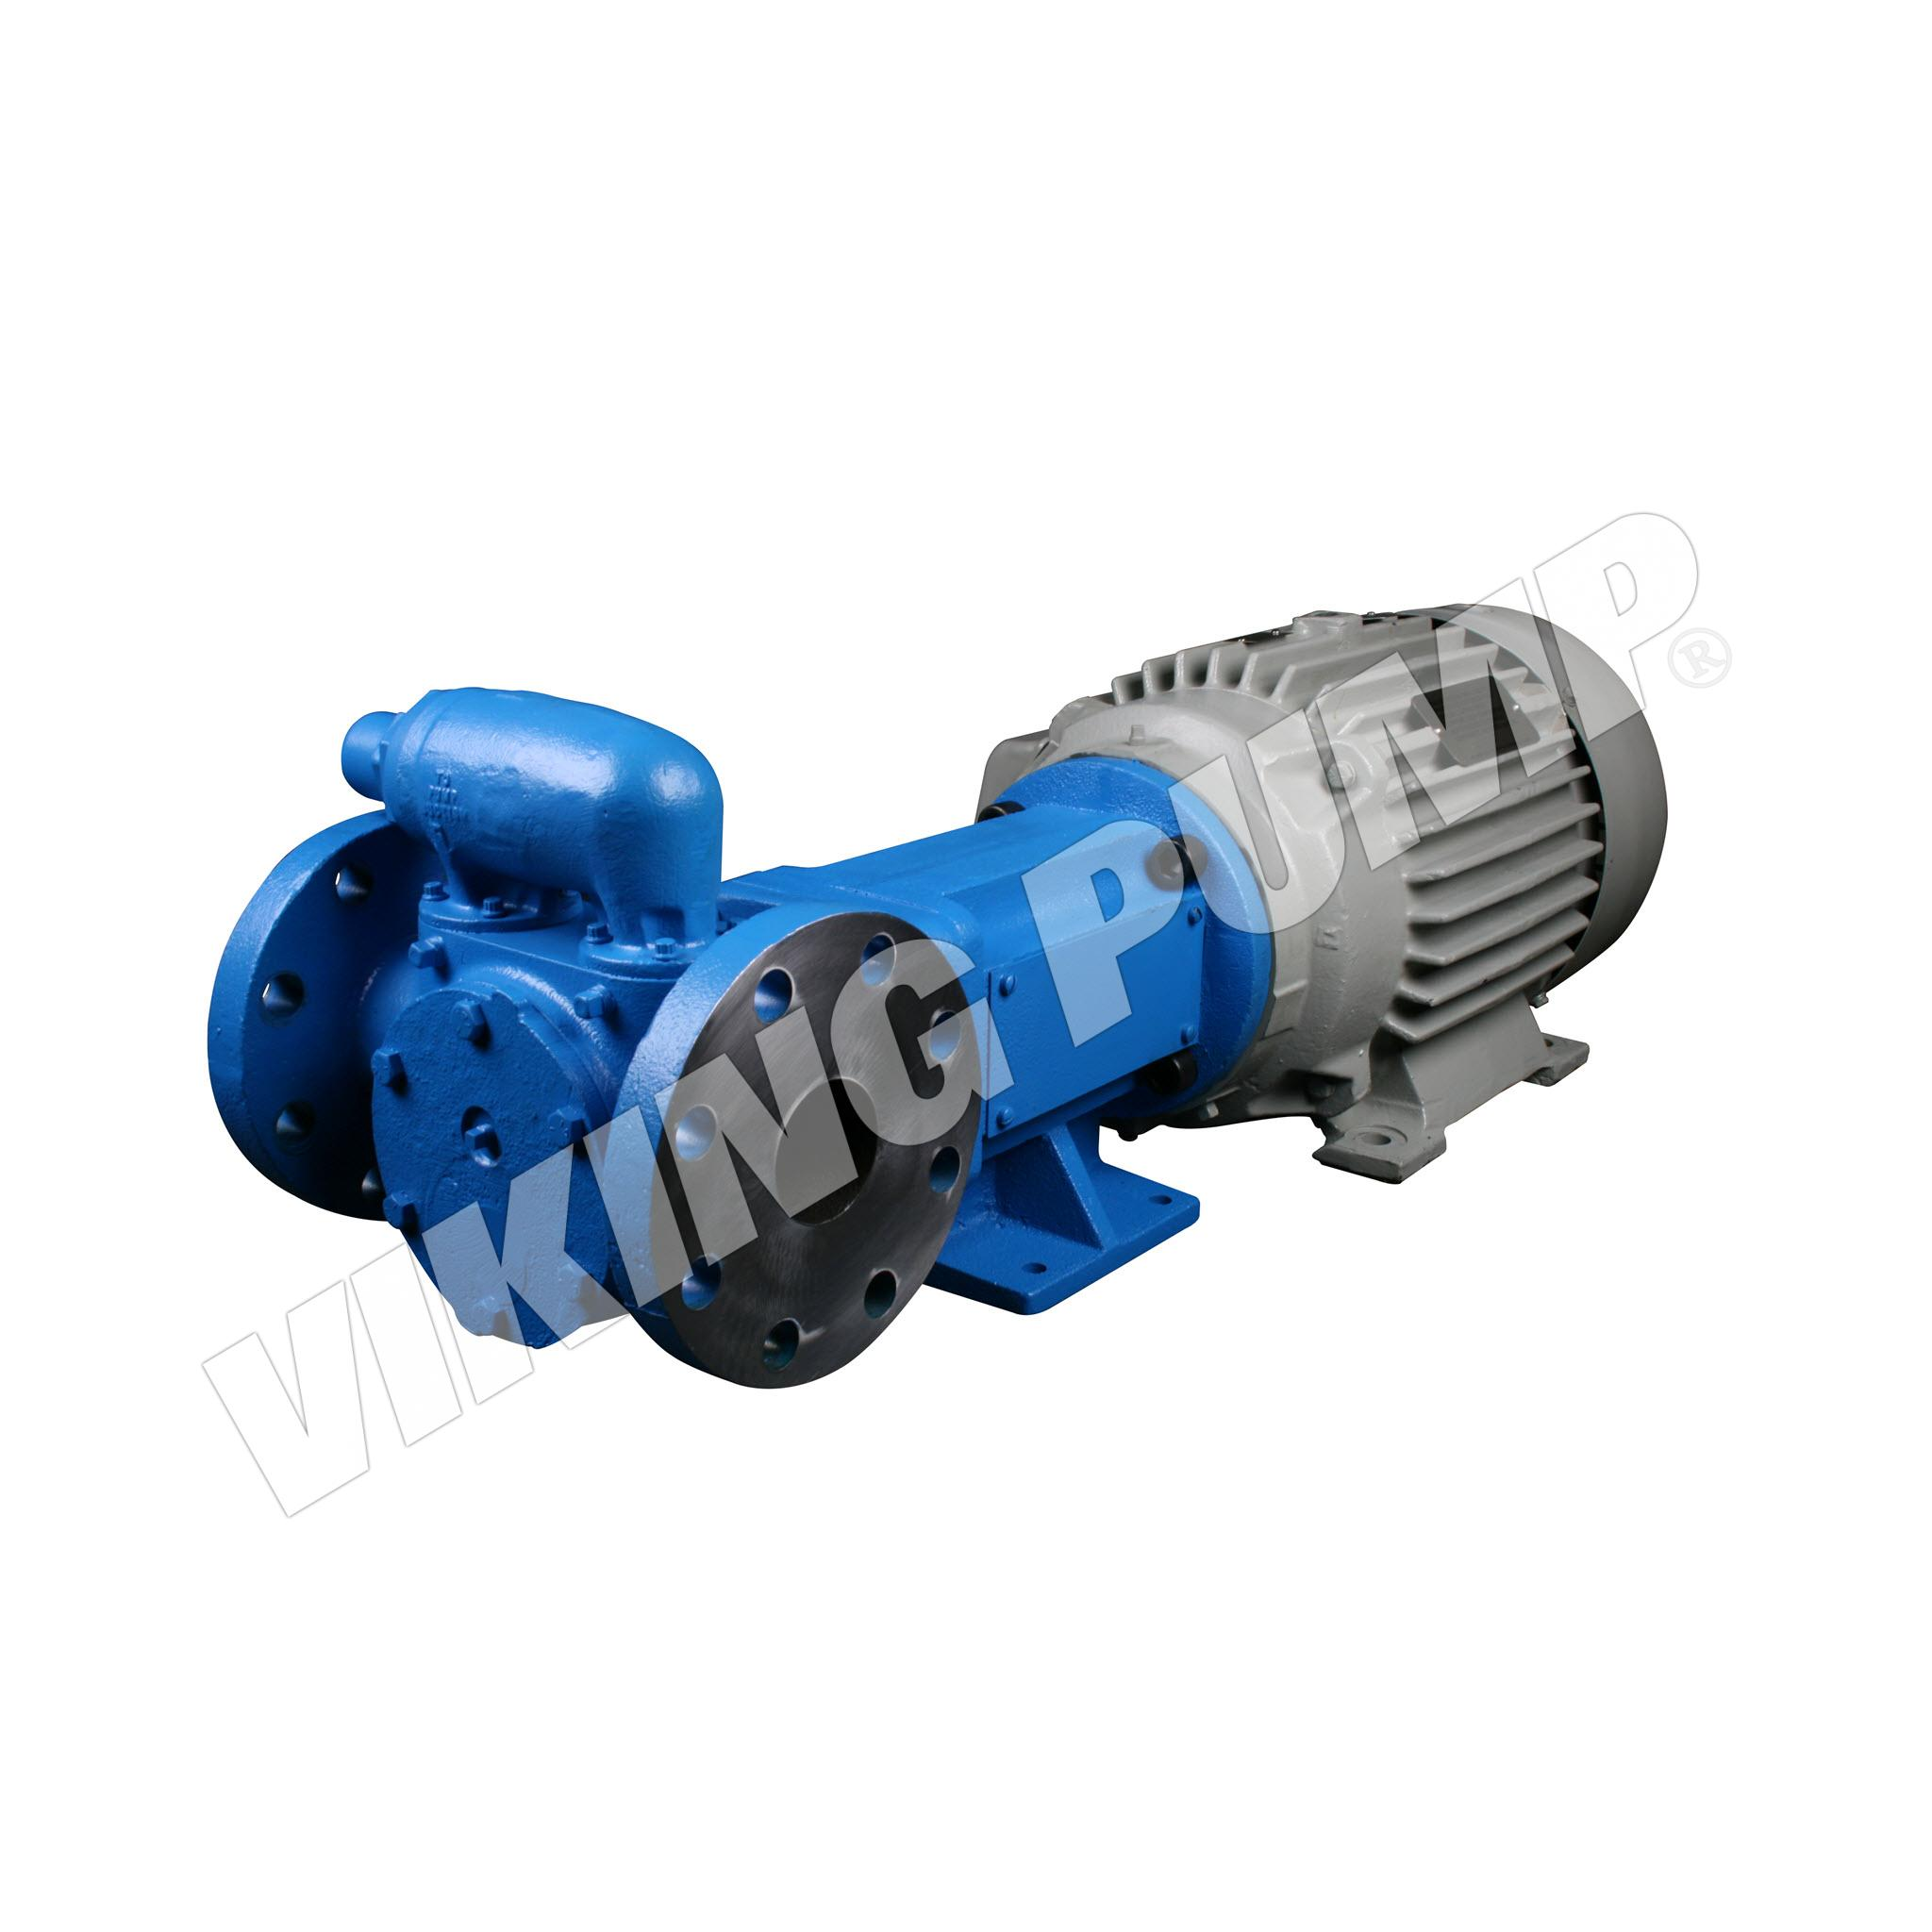 Model AK493, Mechanical Seal, Relief Valve, M Drive Pump Unit